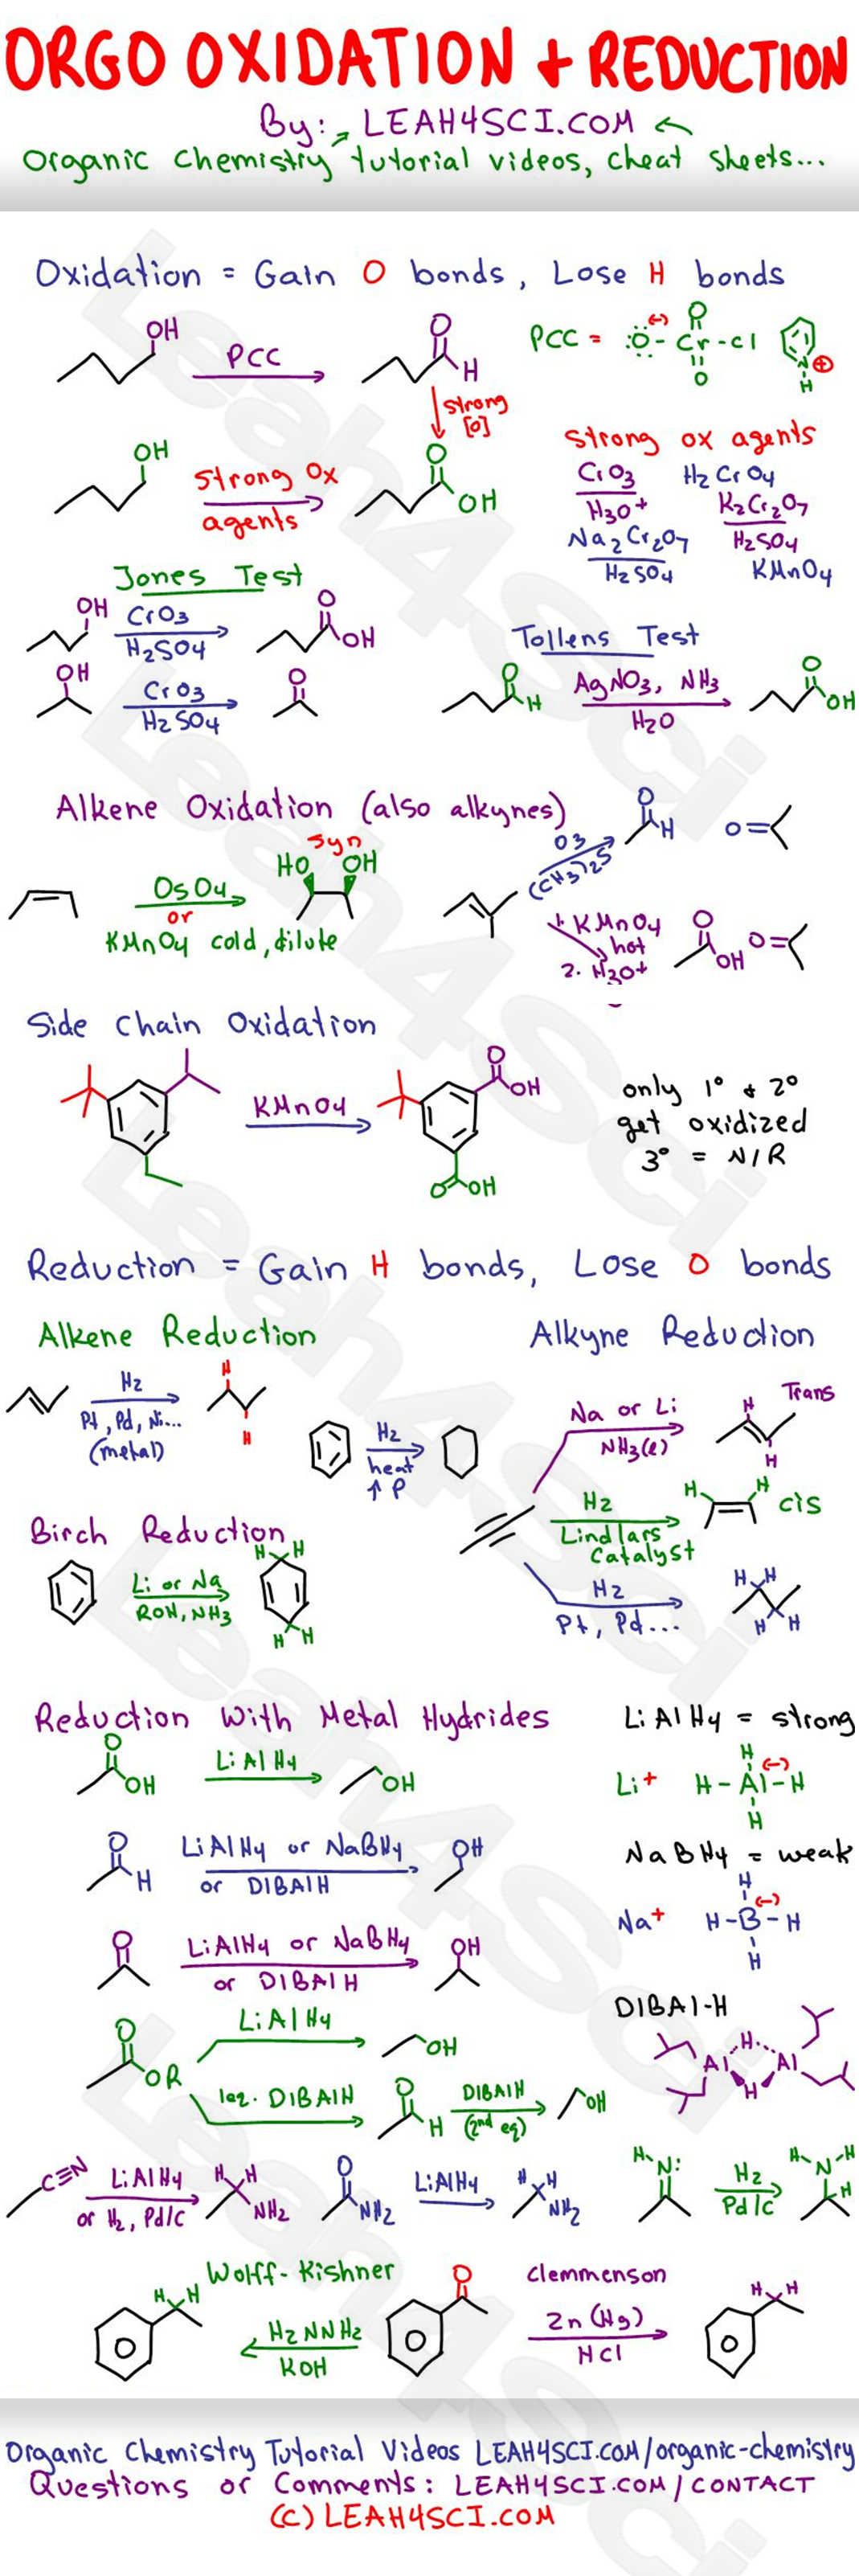 Oxidation And Reduction Reactions Study Guide Cheat Sheet